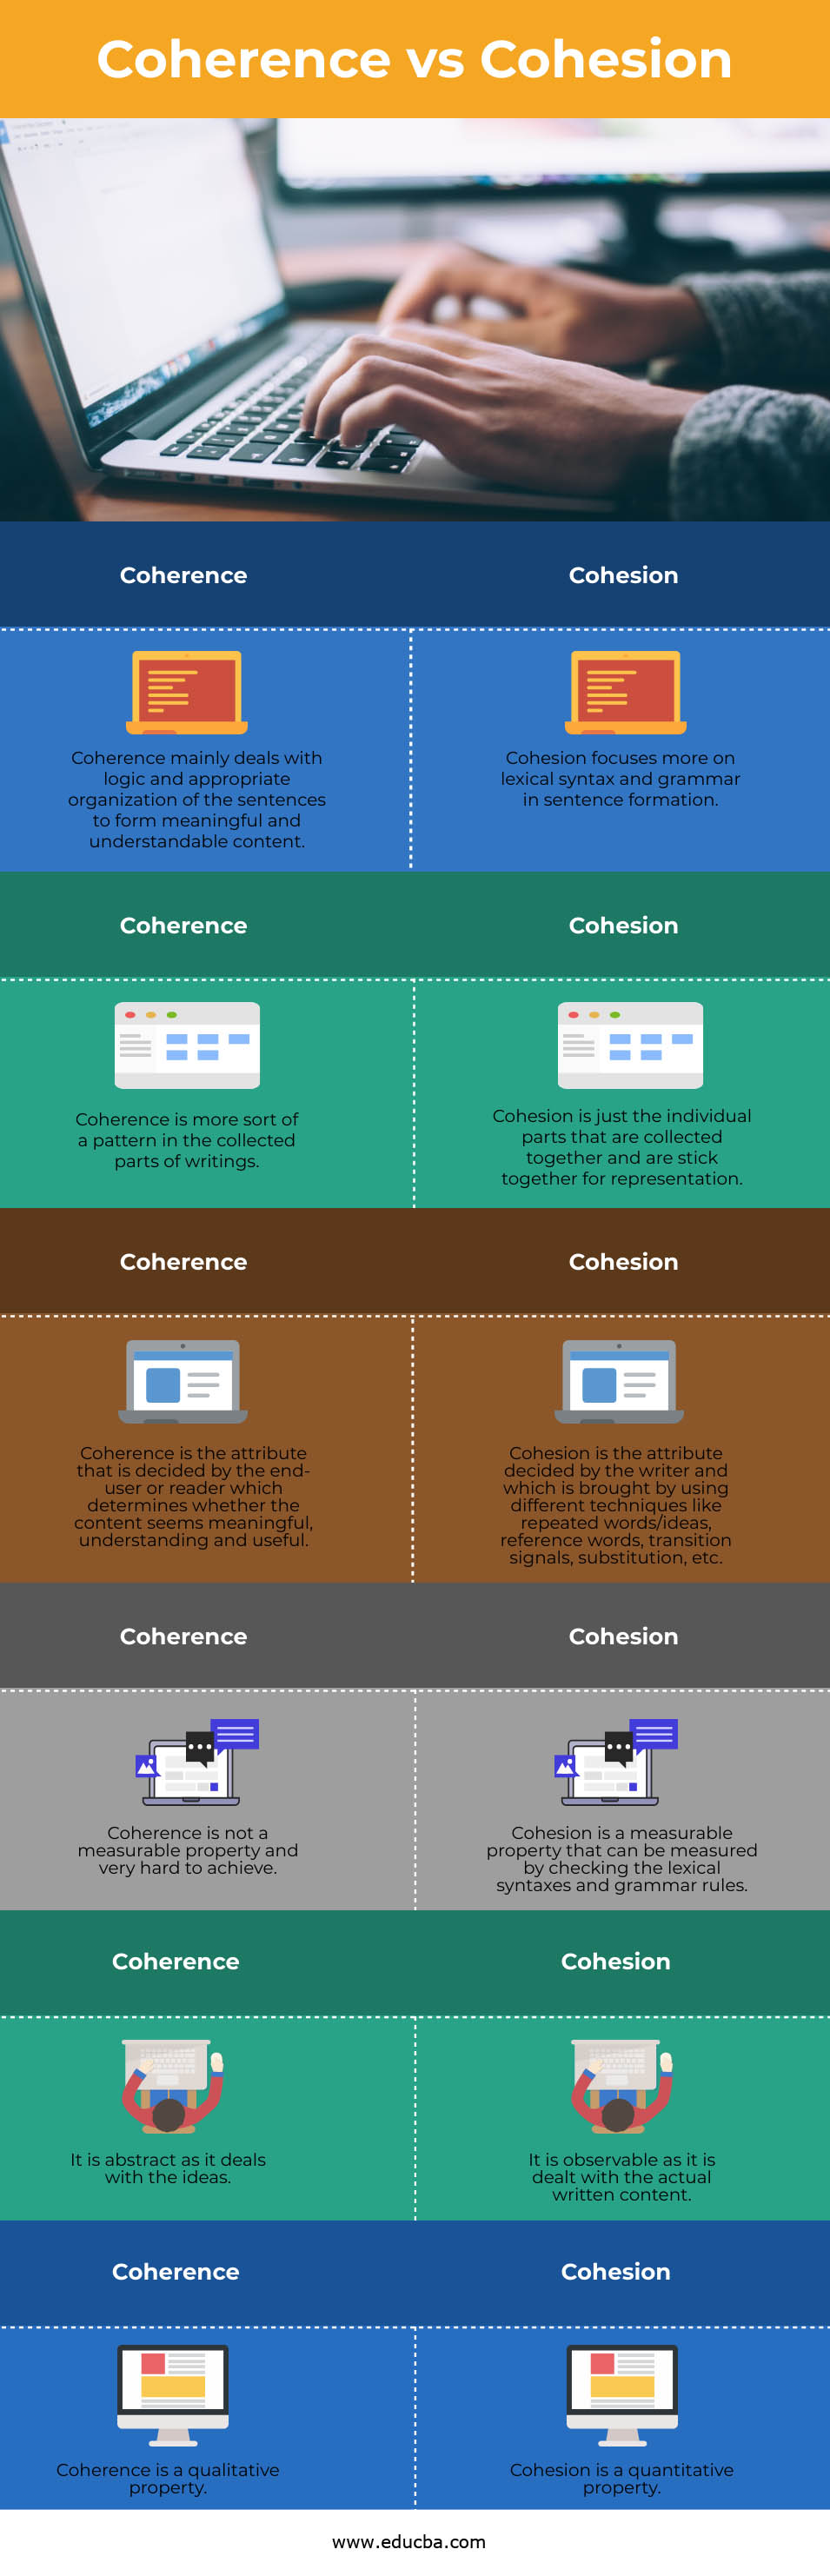 Coherence vs Cohesion info